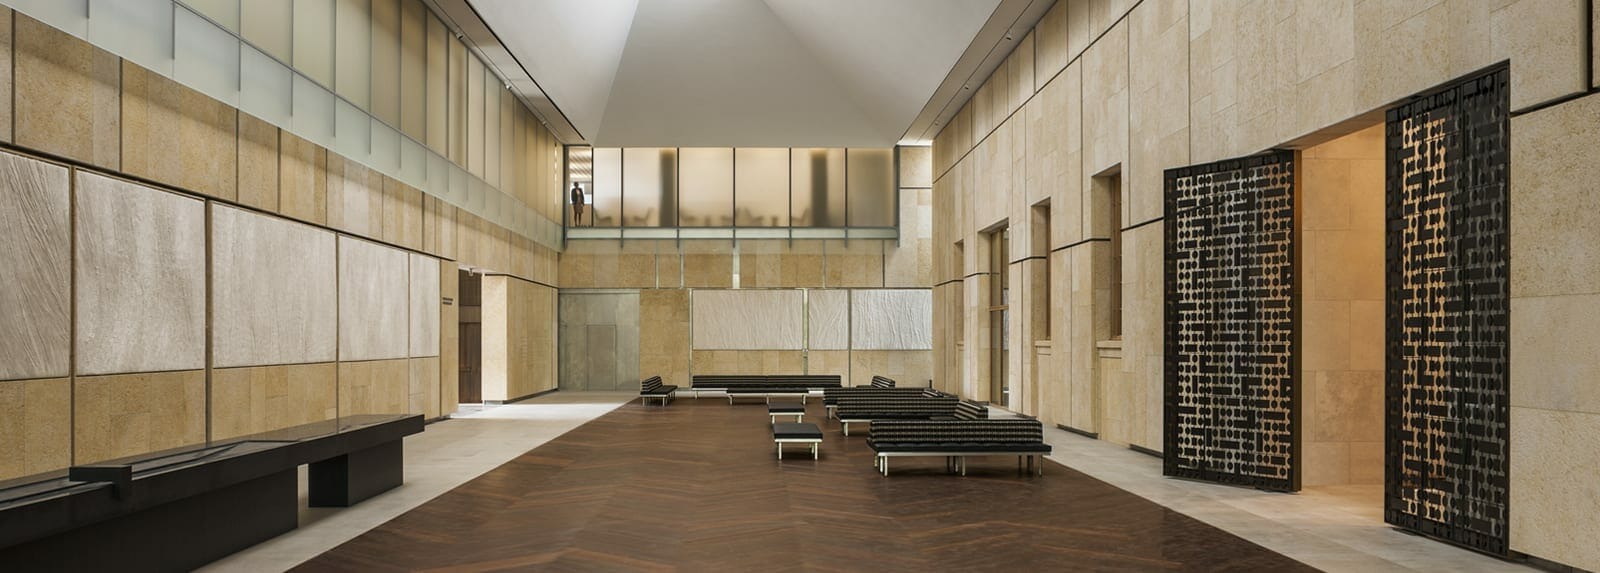 barnes foundation ipe flooring